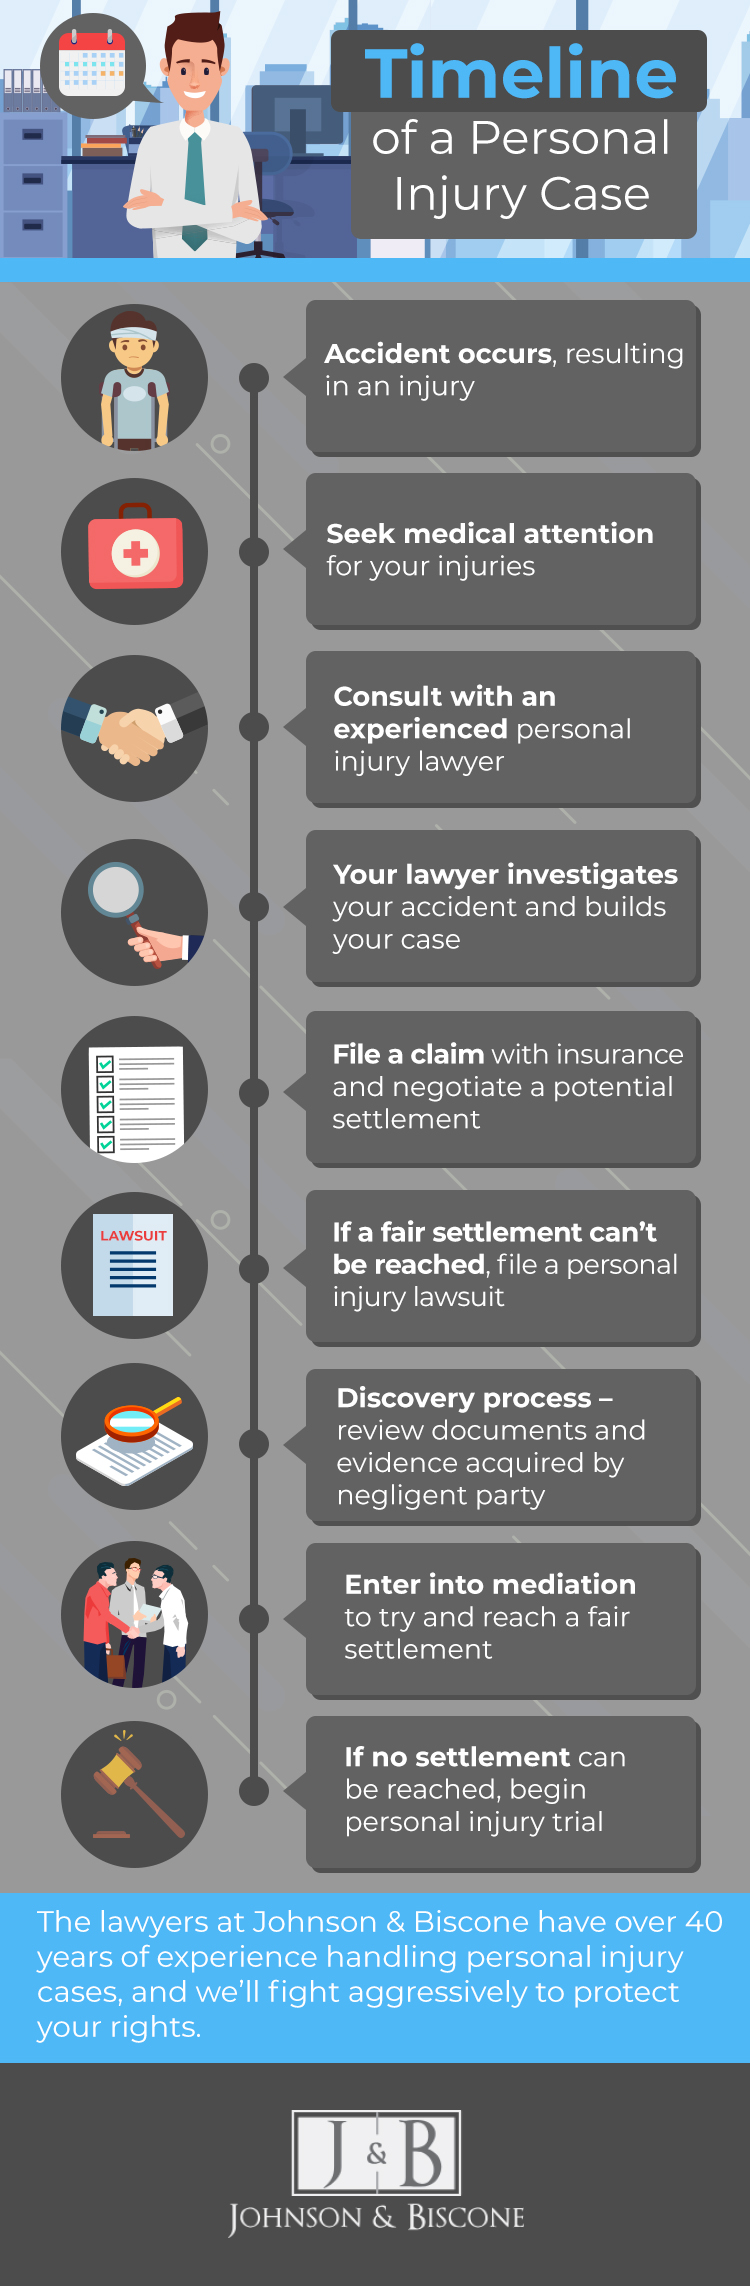 infographic explaining the timeline for a personal injury case